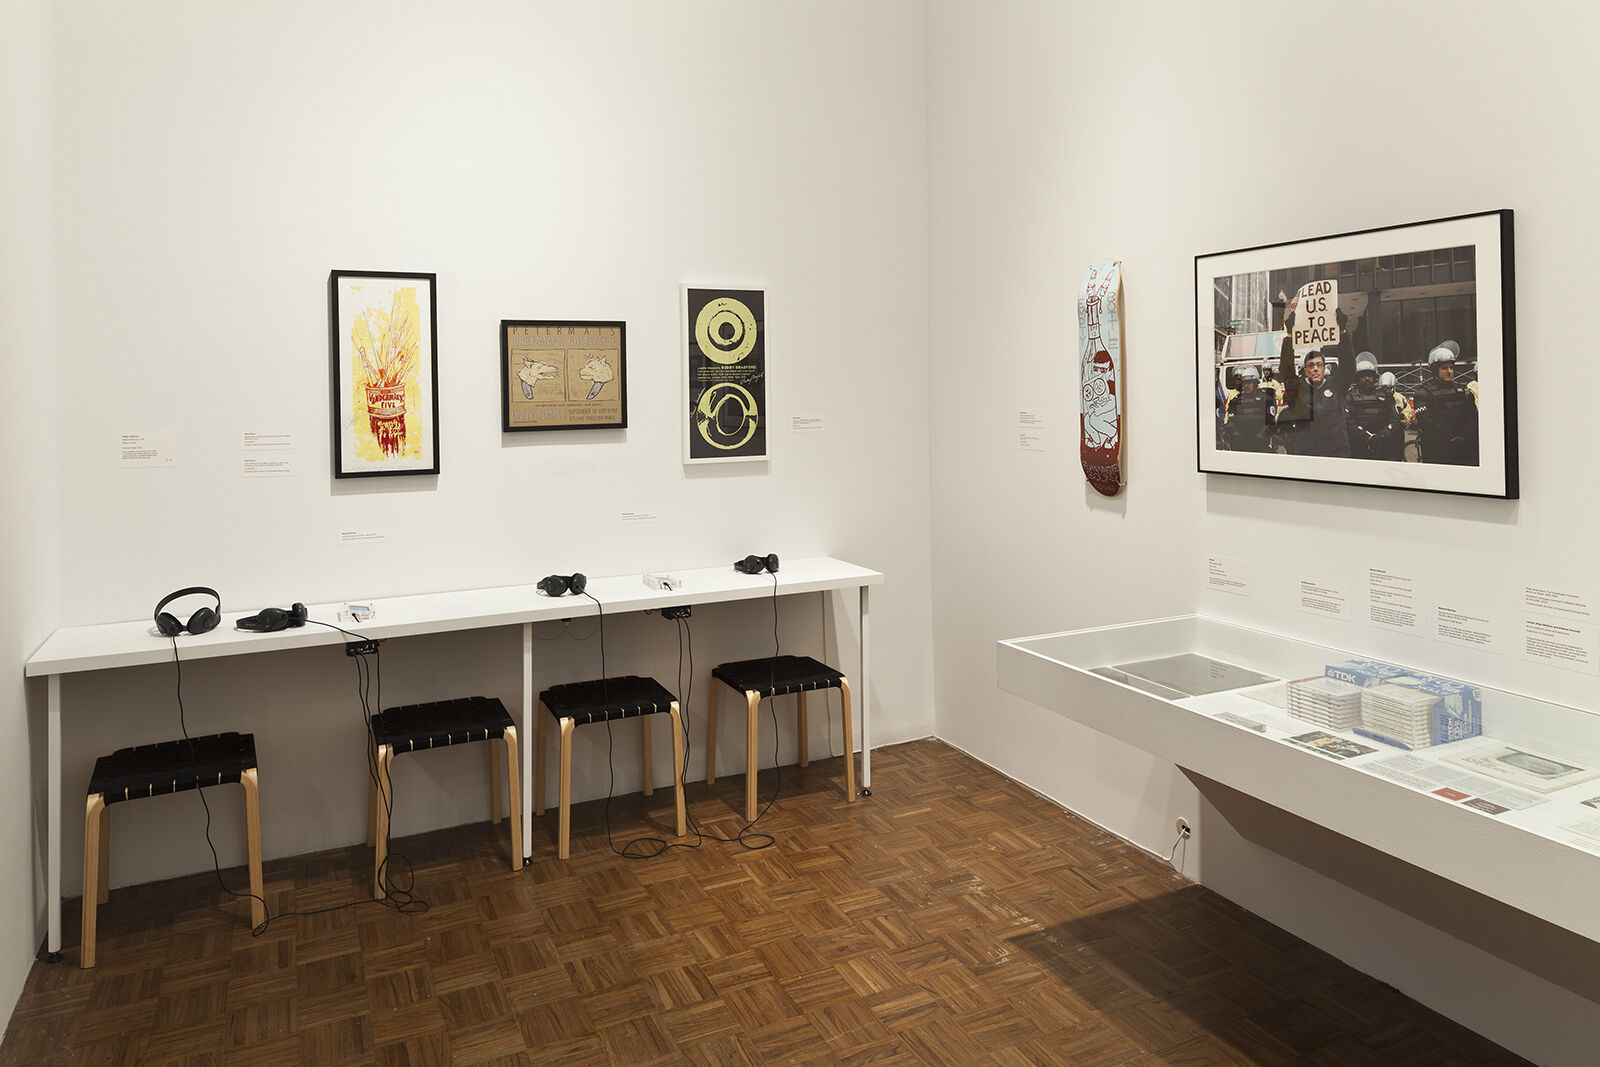 A gallery filled with works of art and a table with several pairs of headphones.